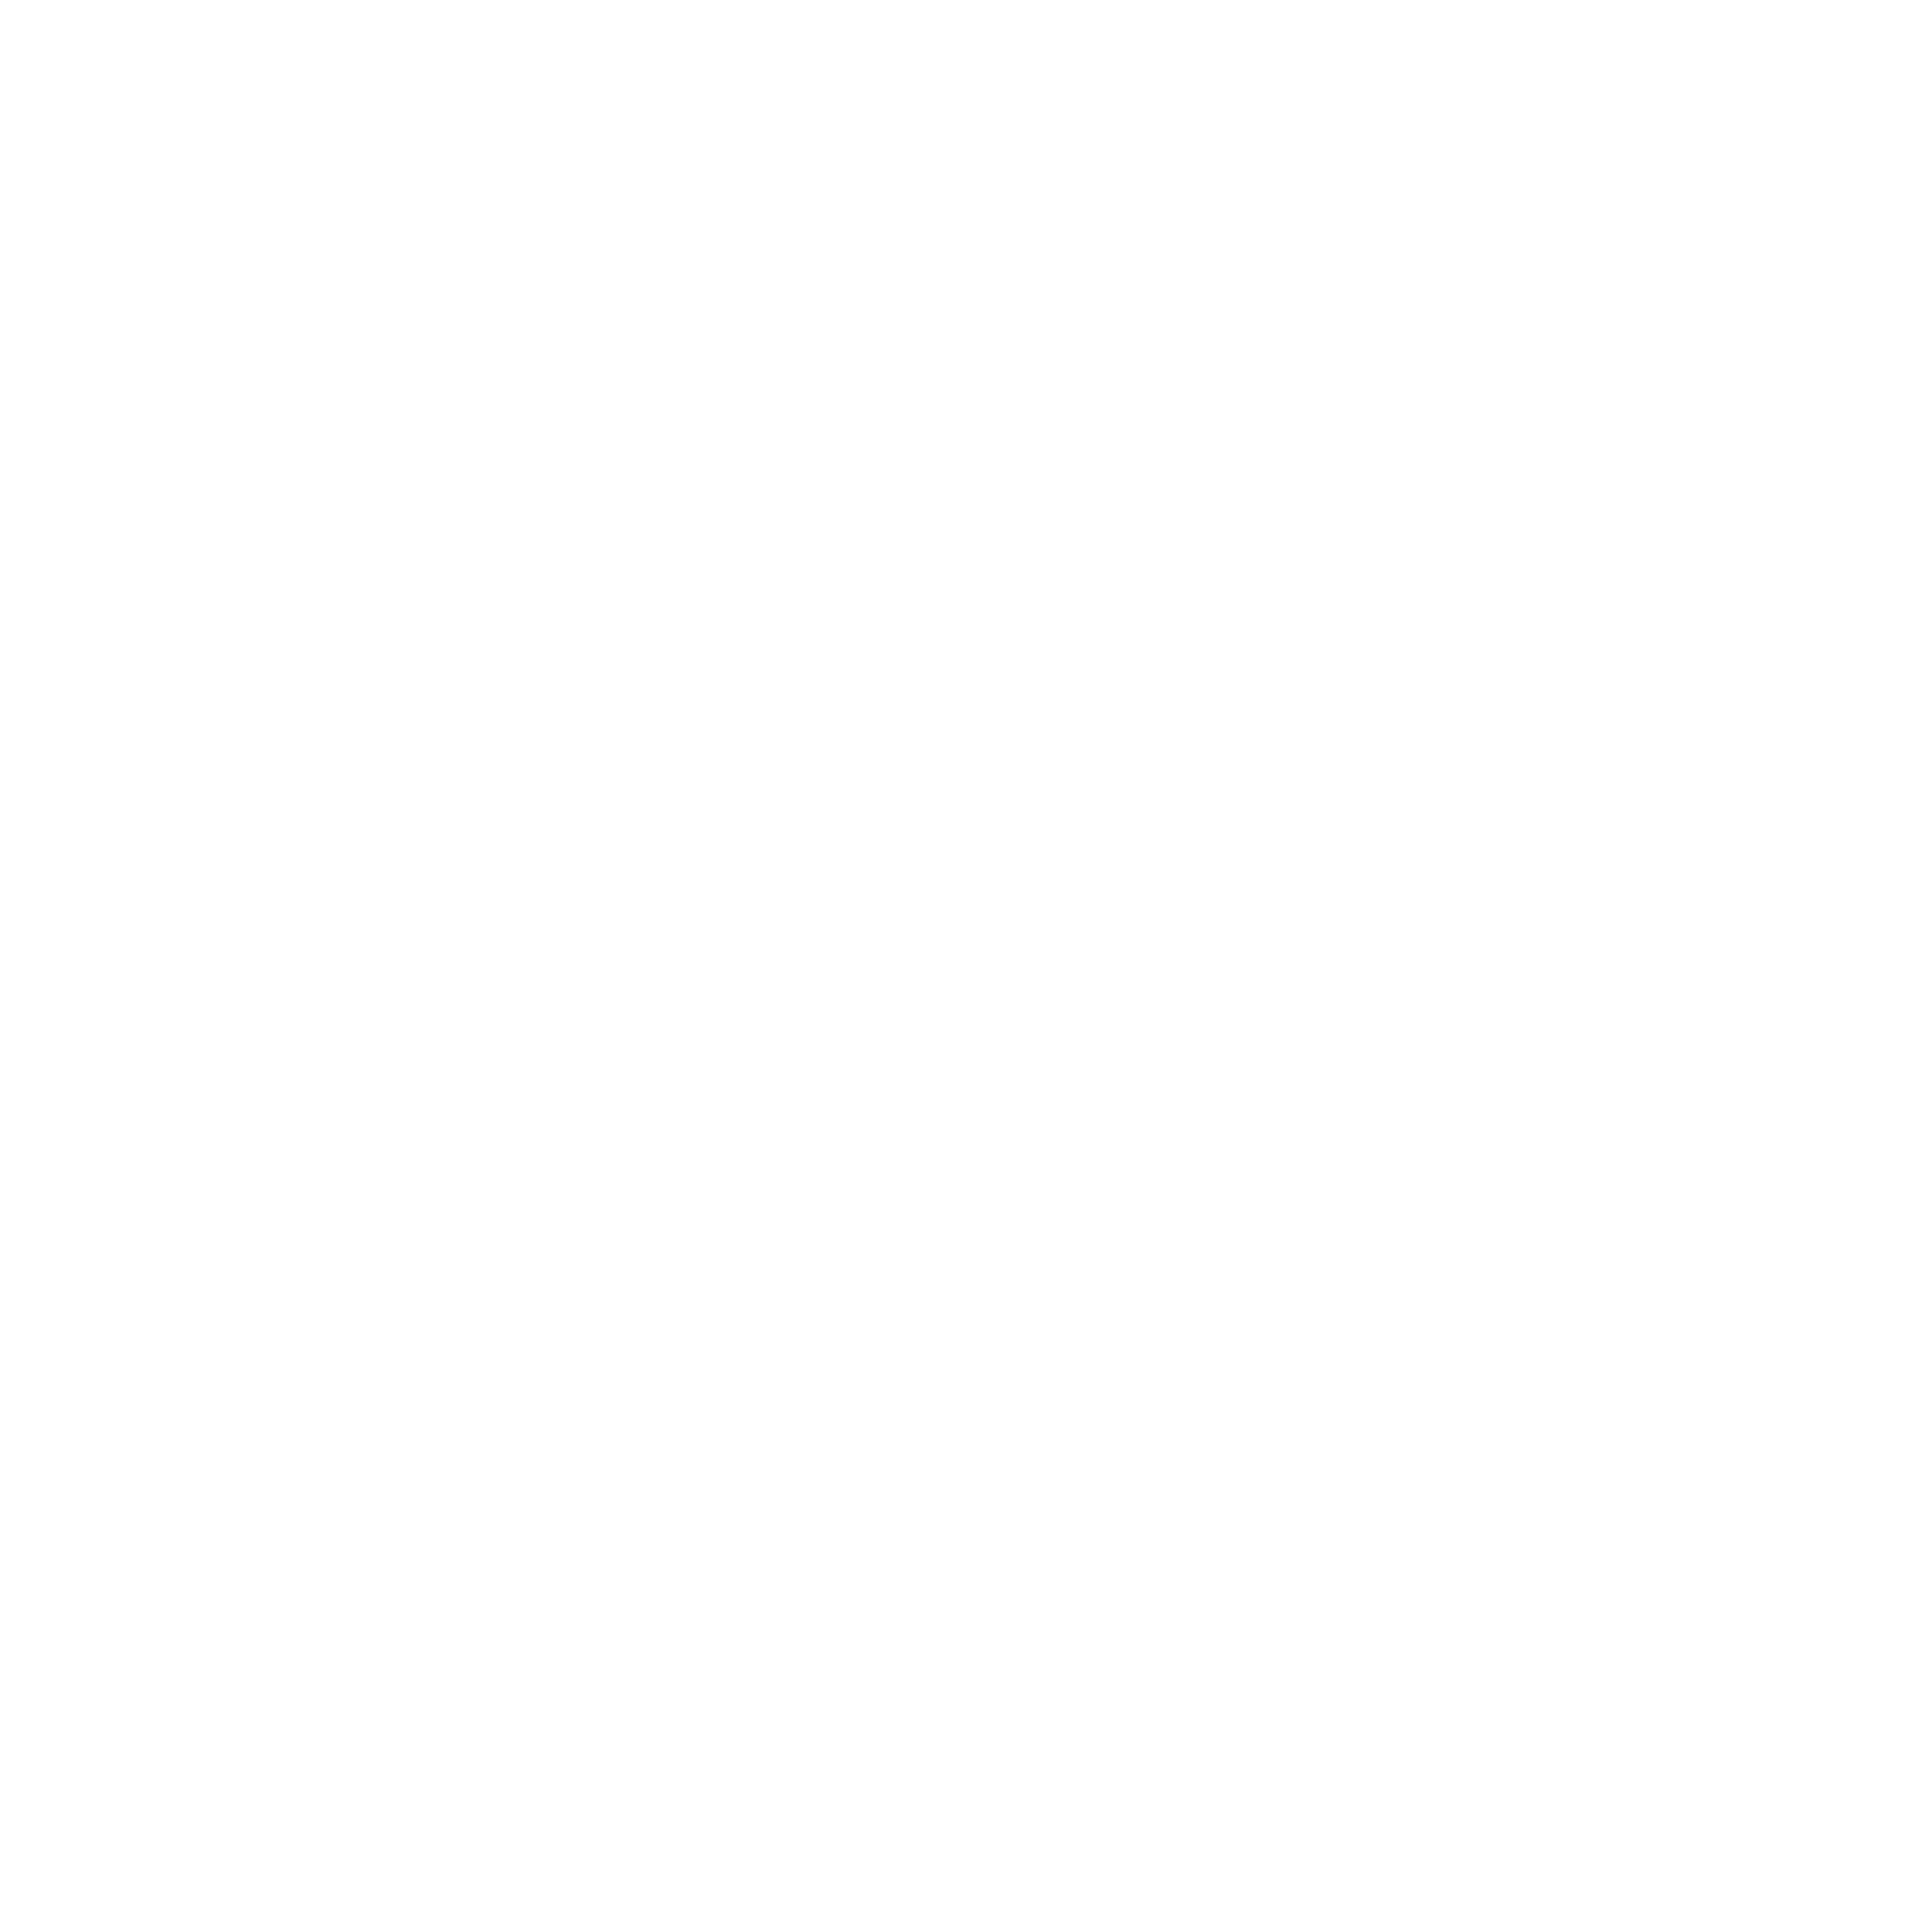 One to One consultation